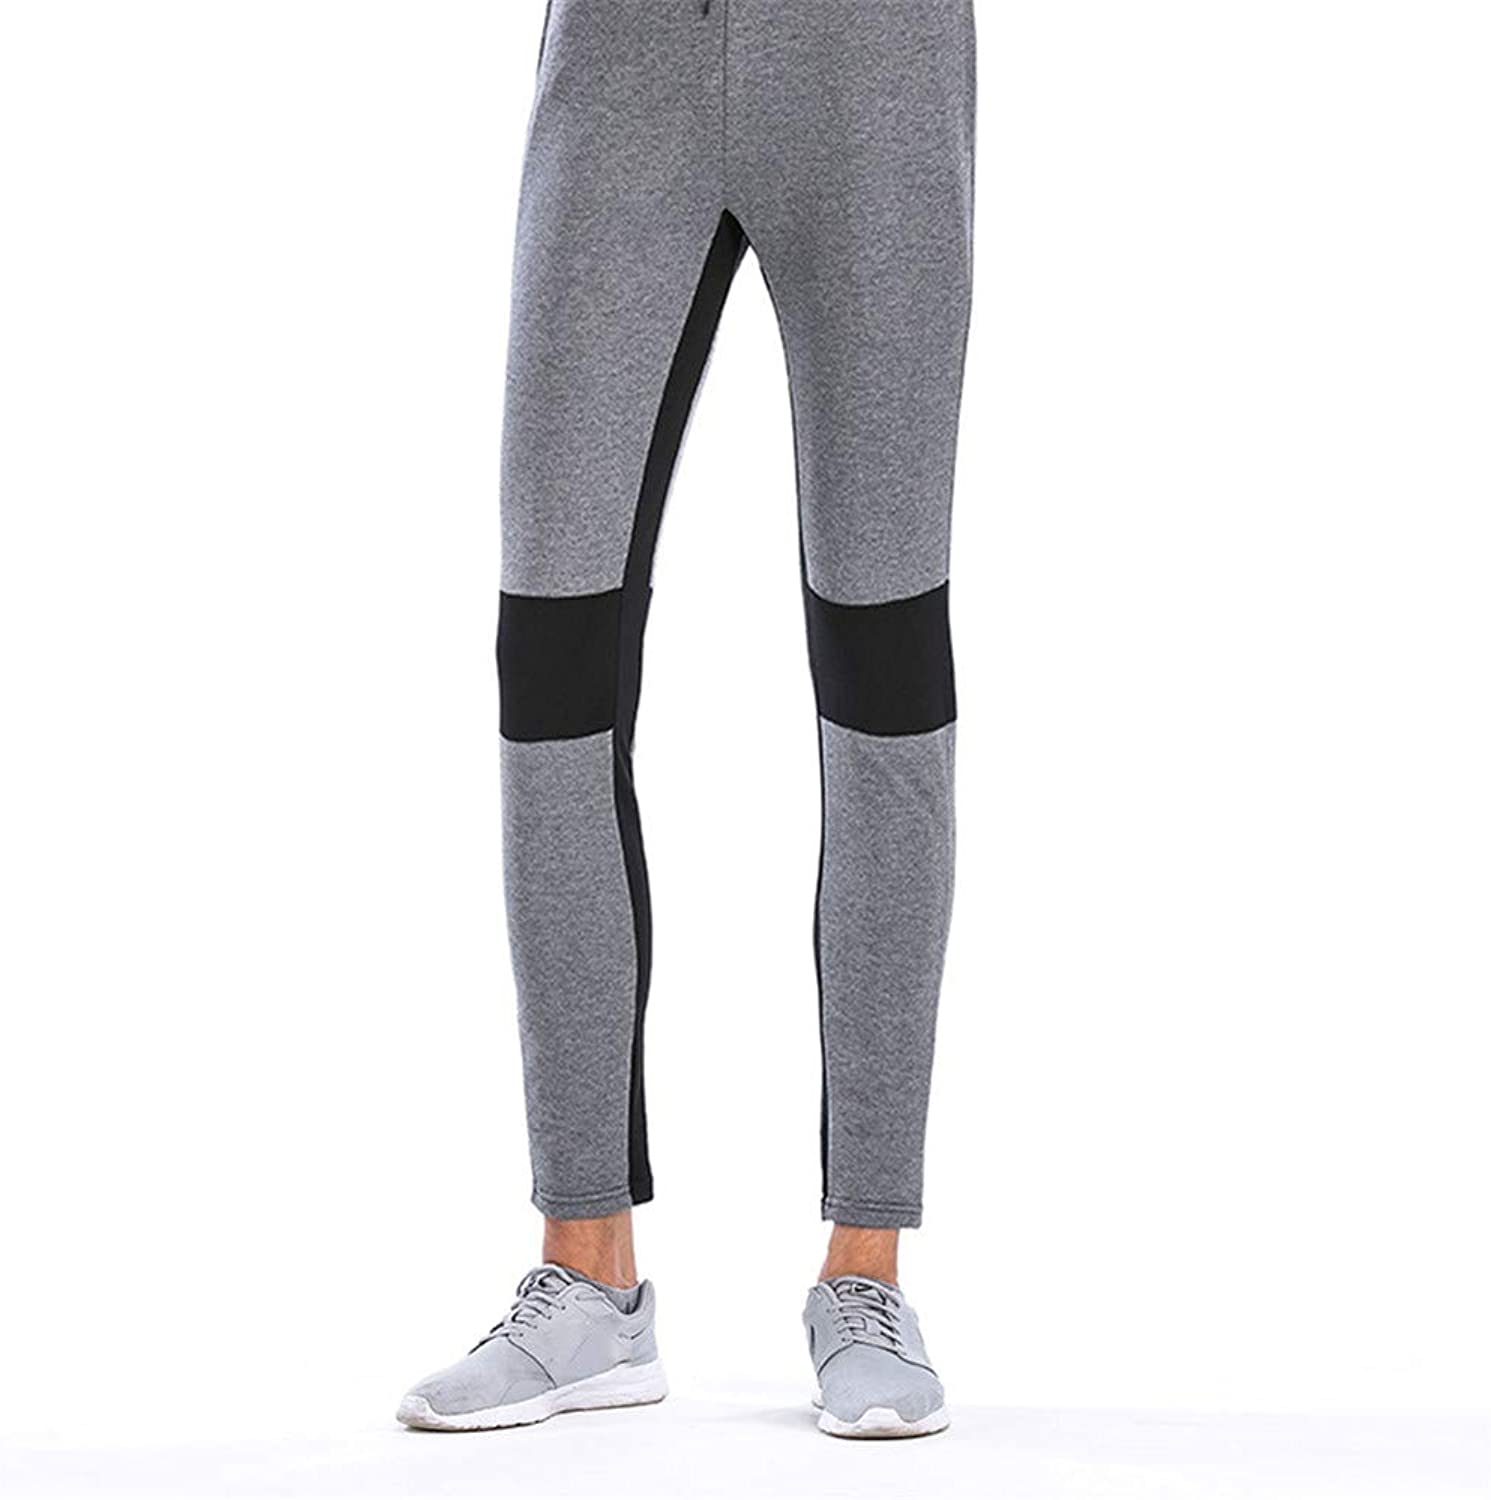 367e4bc11 Men's Pants Workout Leggings for Gym, Basketball, Cycling, Yoga, Hiking Men's  Compression Pants Layer Cool Dry Tights Leggings (Size XXL) Compression Base  ...